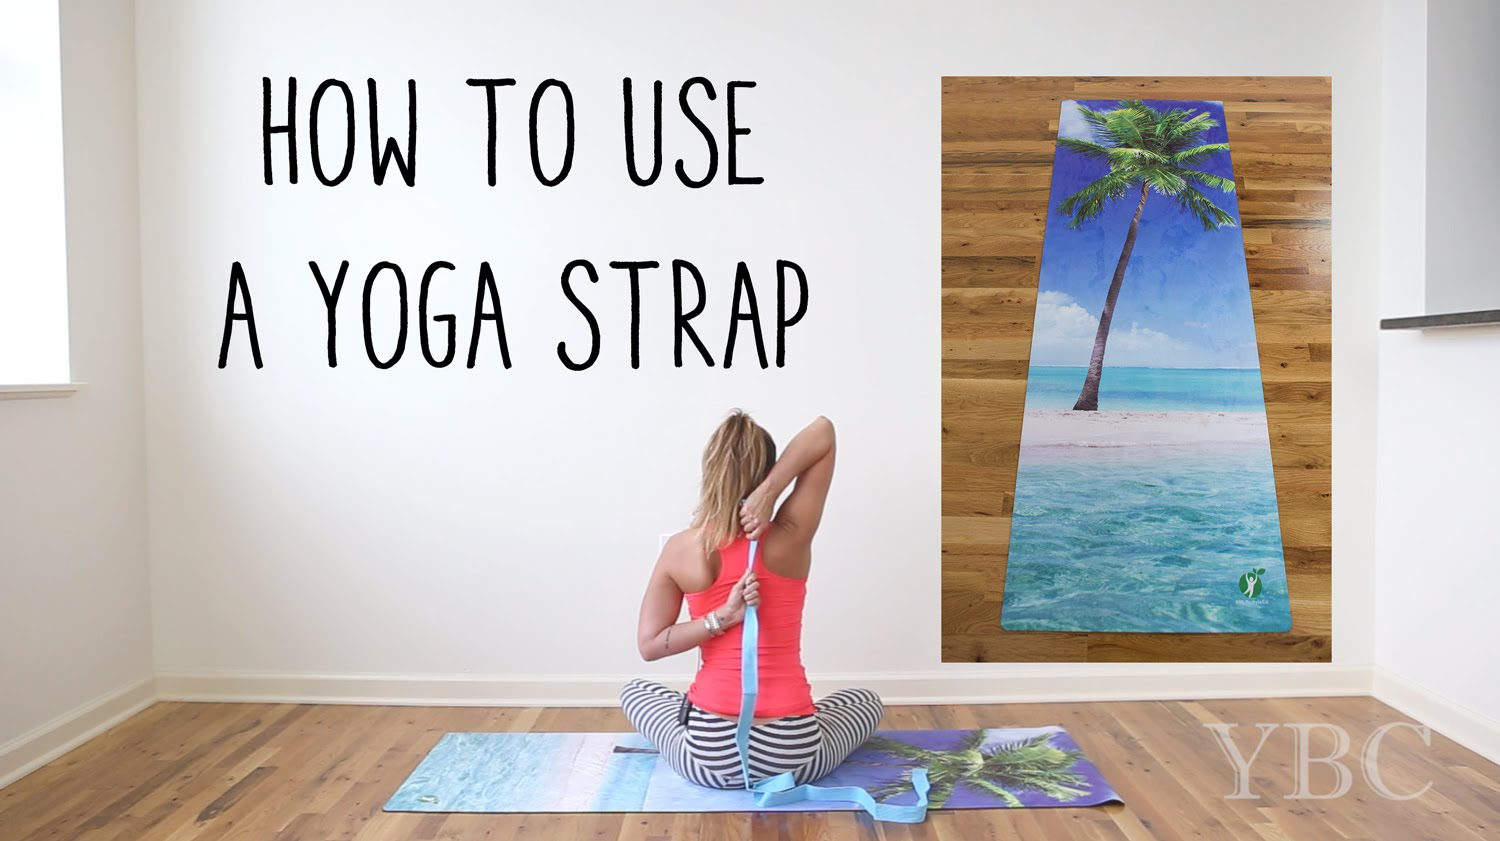 How to use a yoga/stretching strap